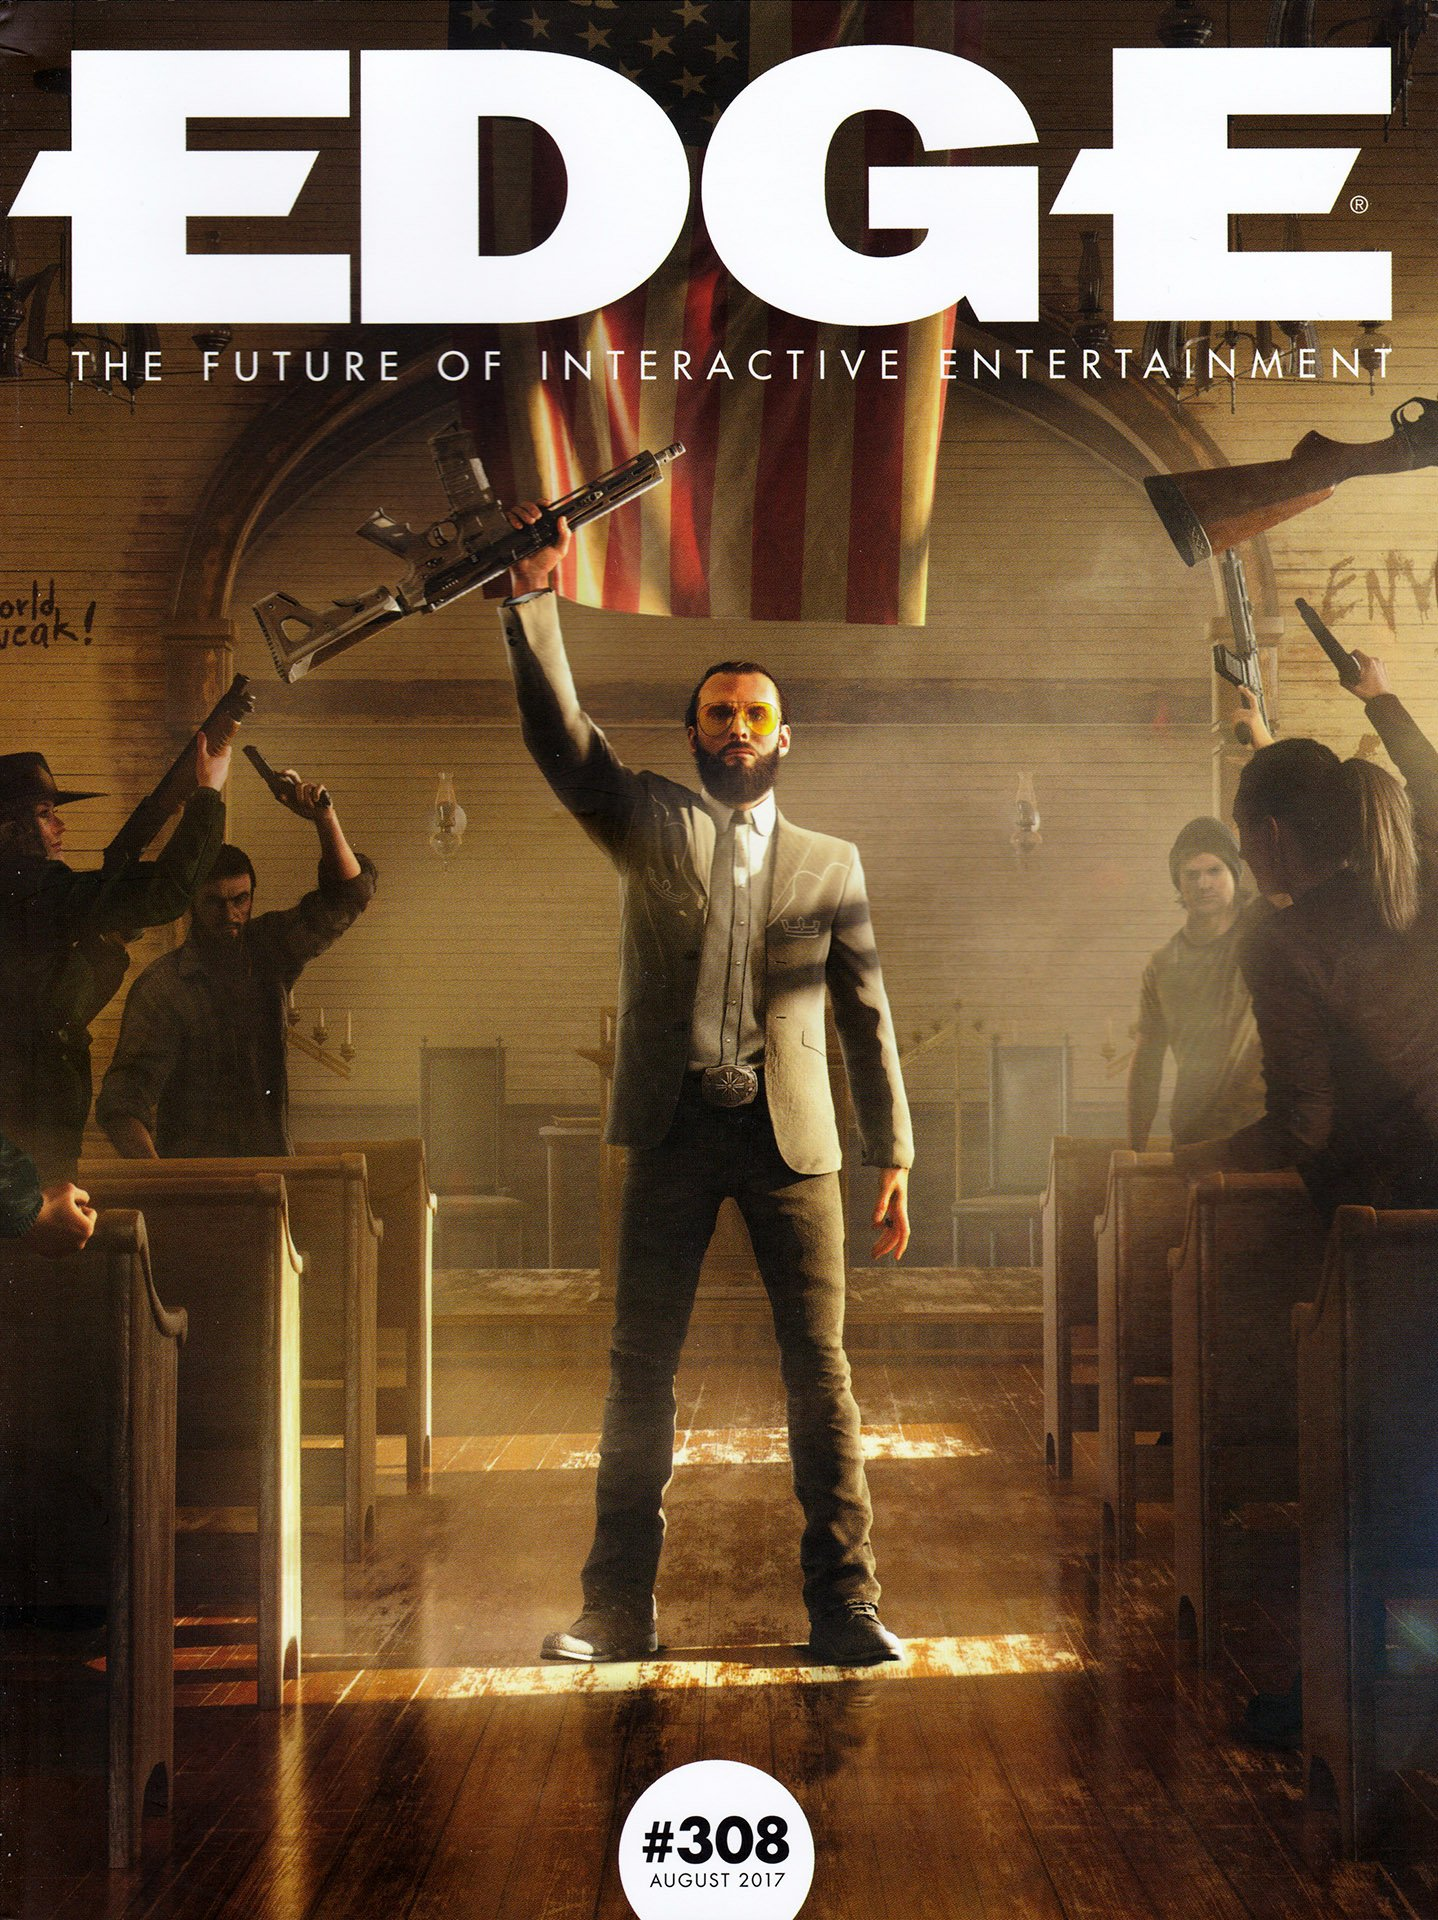 Edge 308 (August 2017) (subscriber edition)